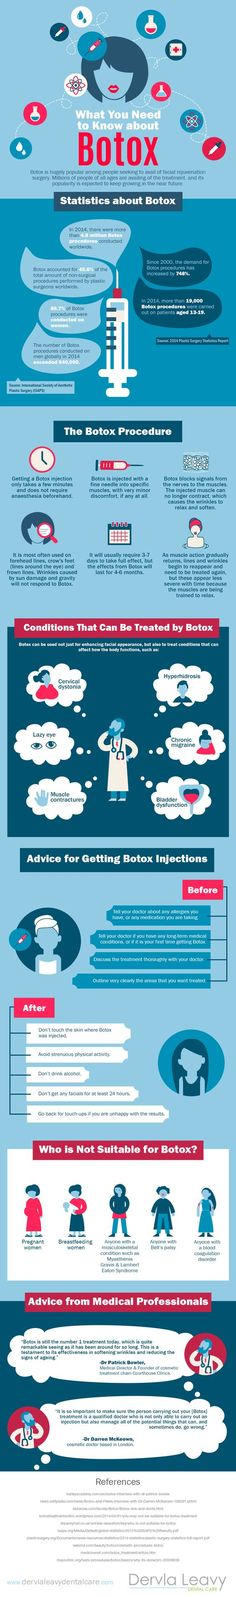 What You Need To Know About Botox (Infographic)